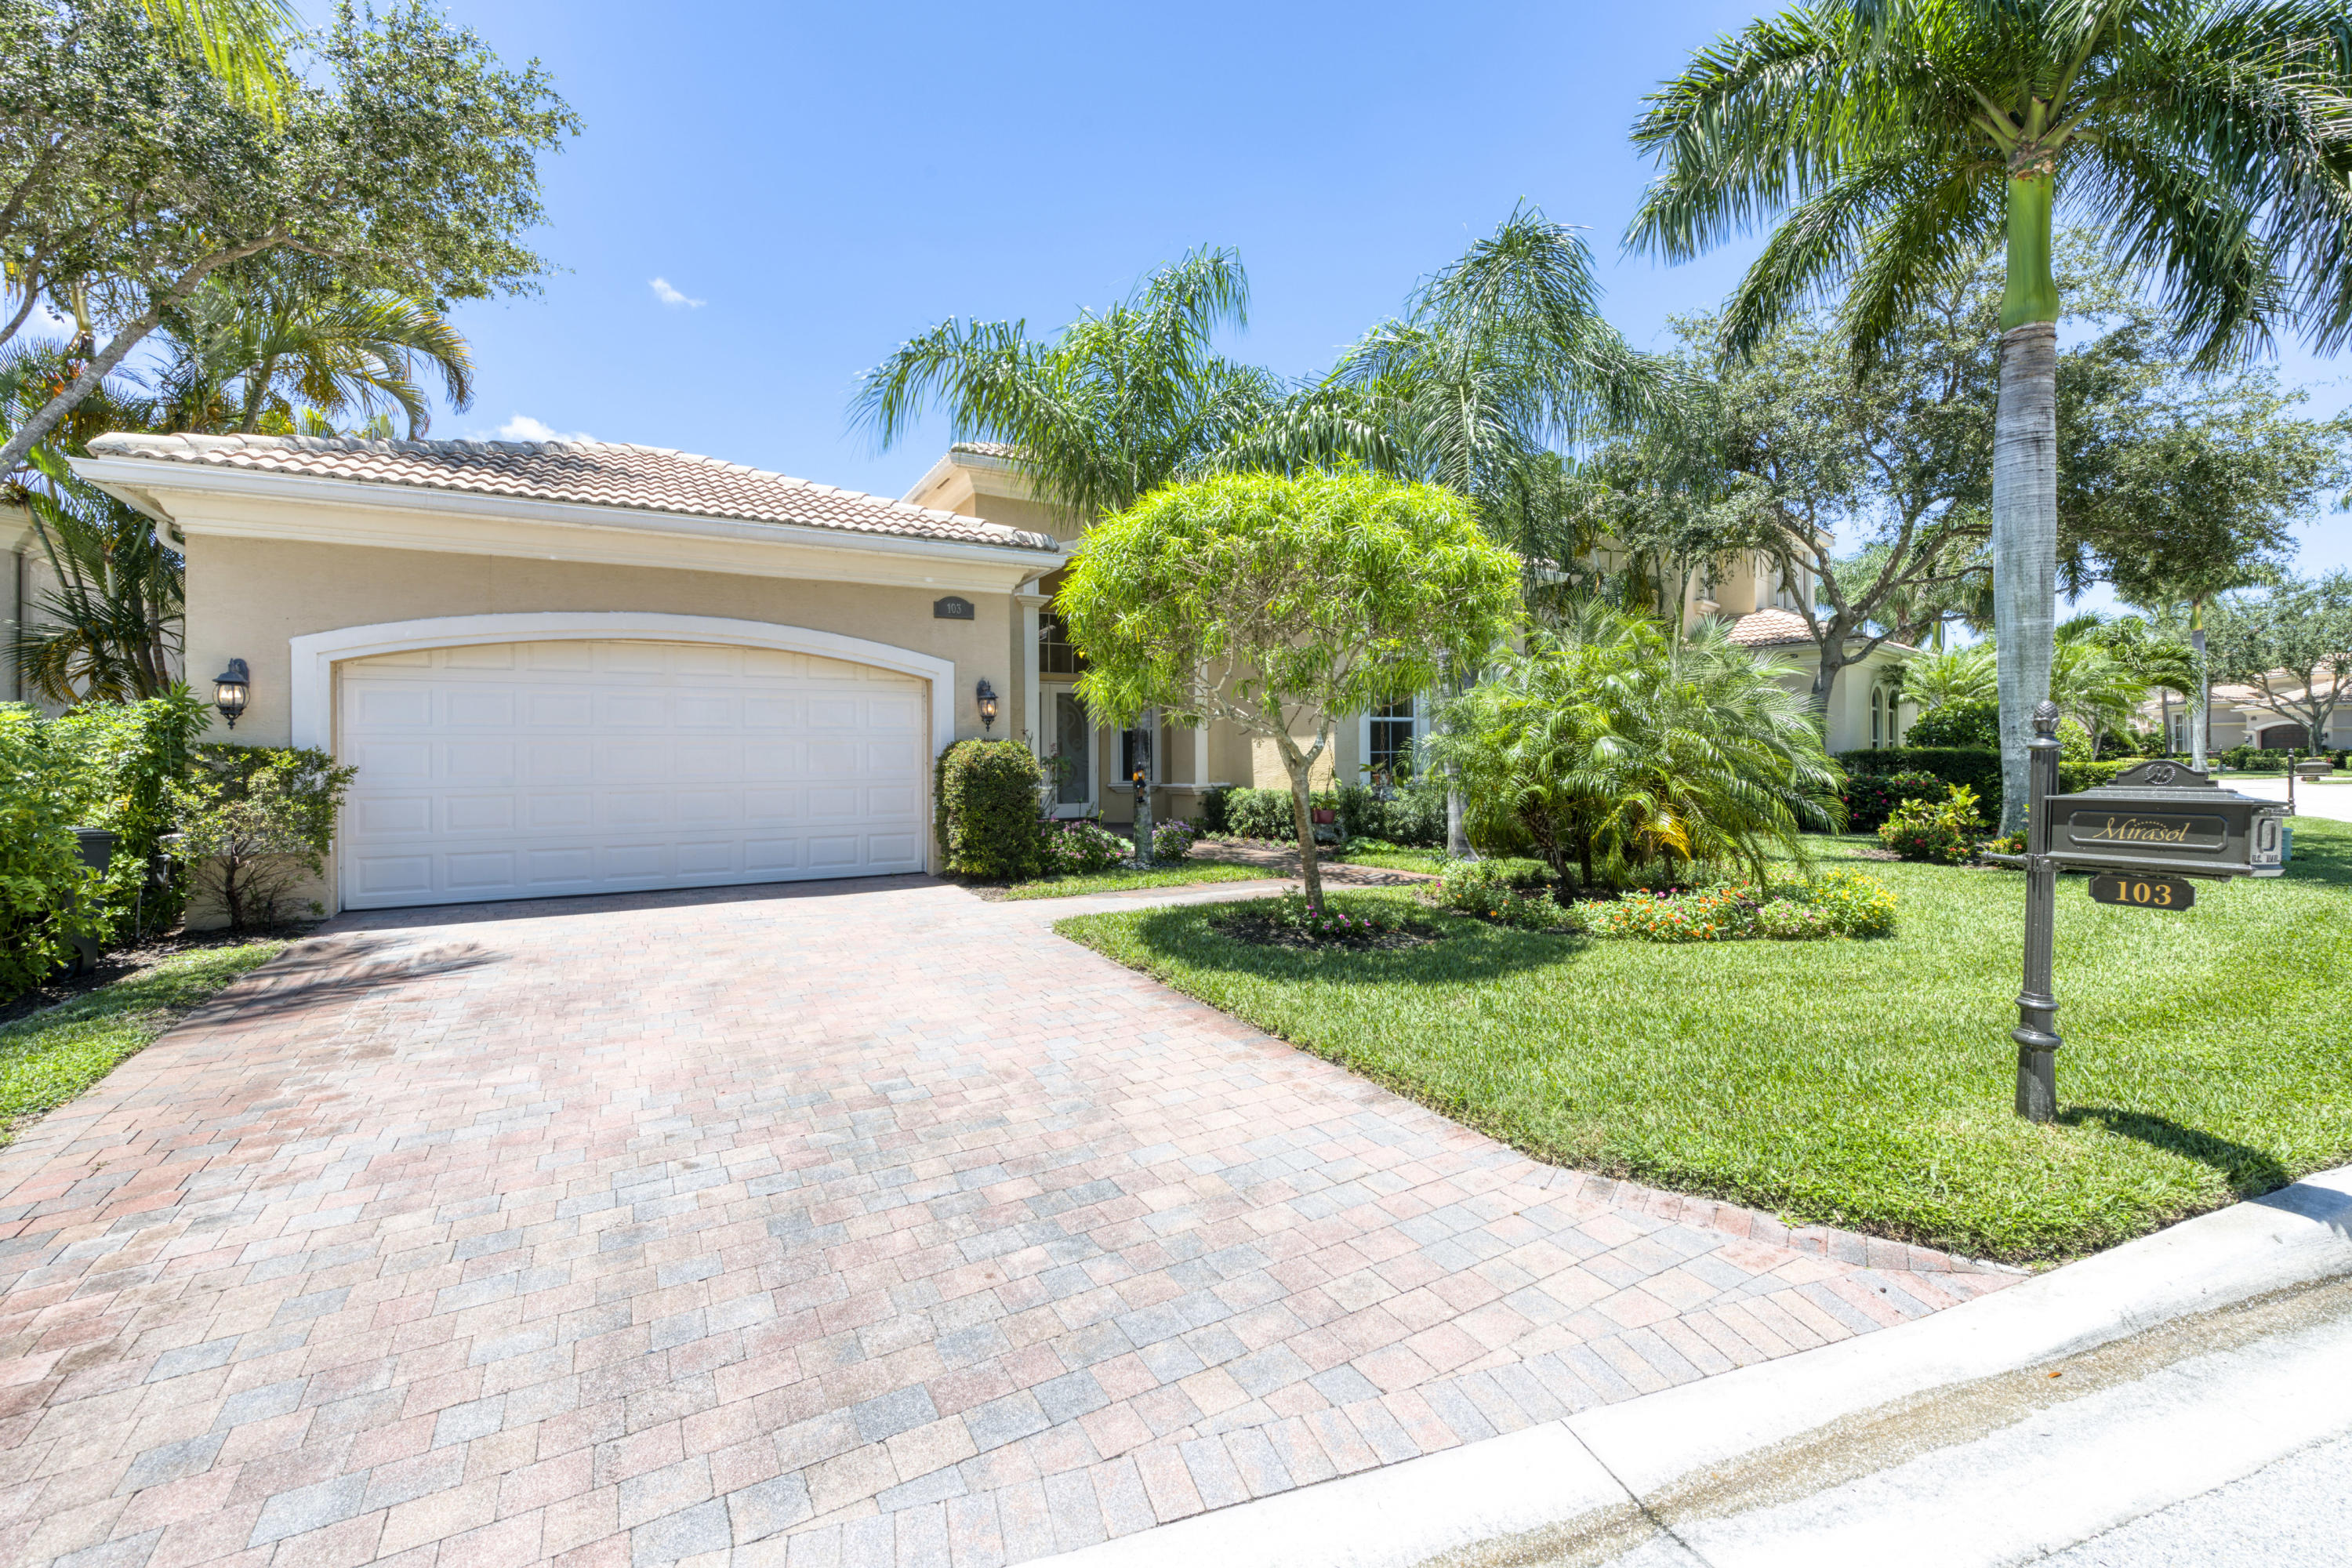 Details for 103 Dalena Way, Palm Beach Gardens, FL 33418